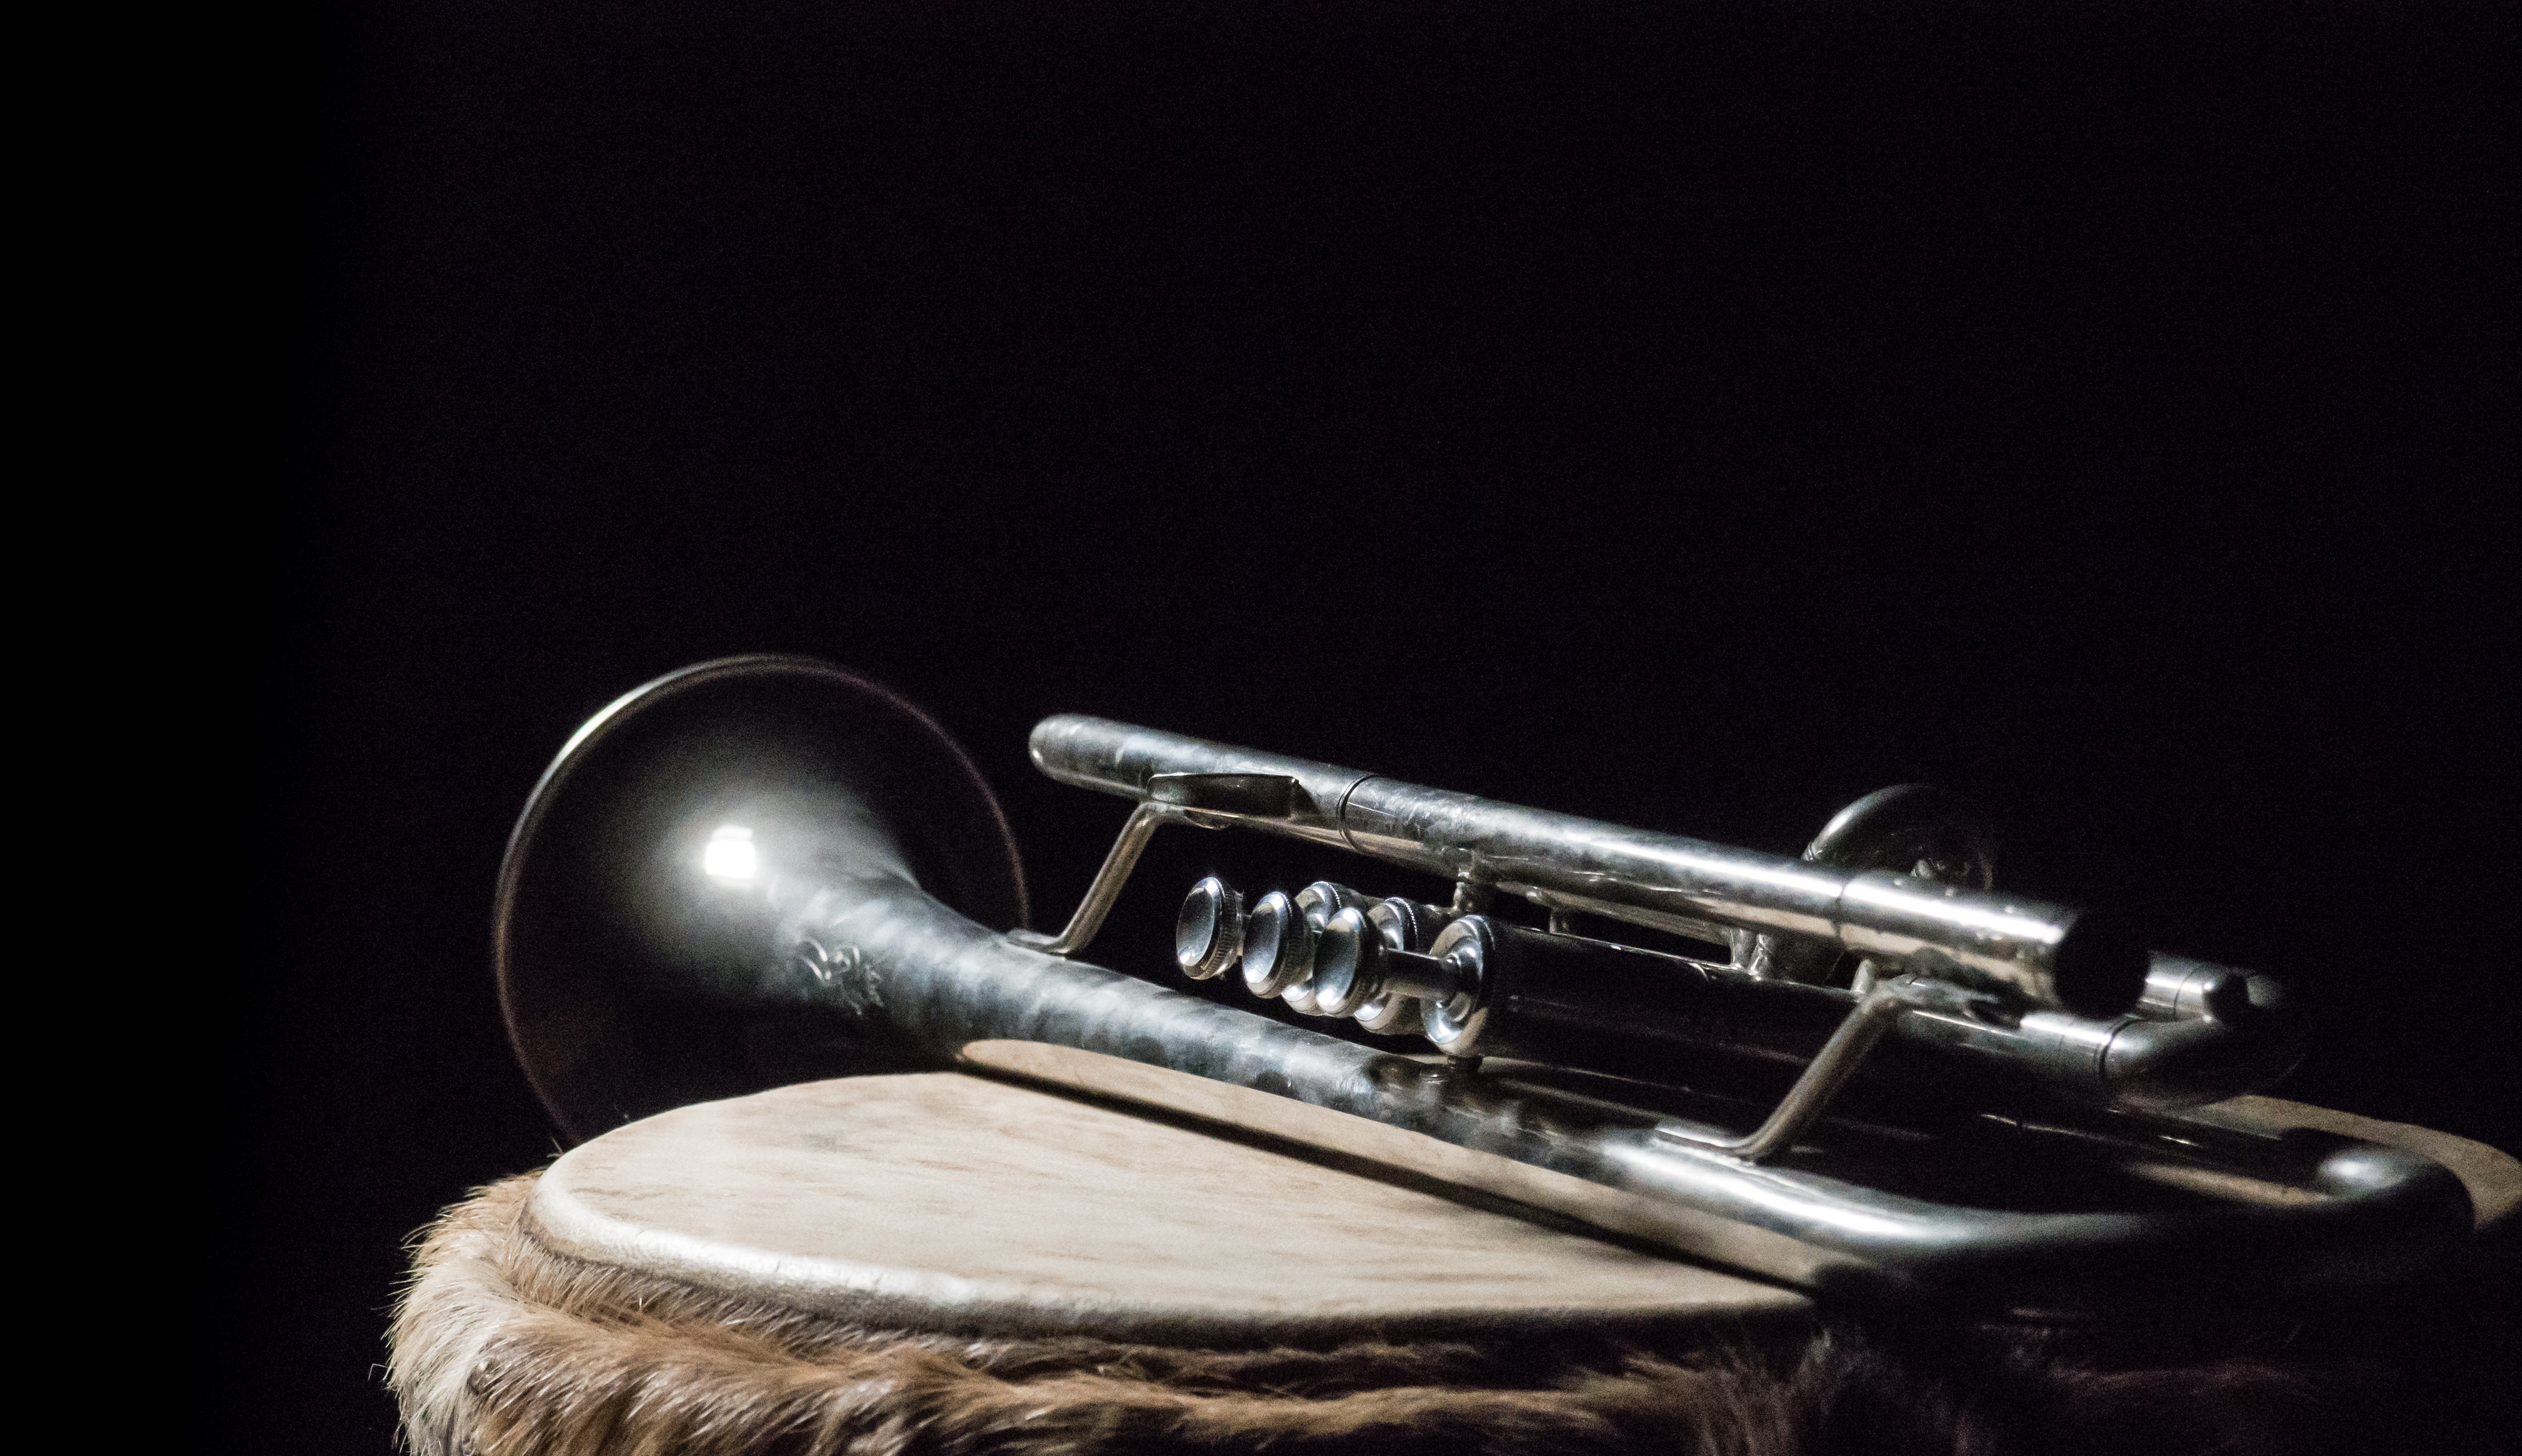 silver trumpet on brown wooden surface